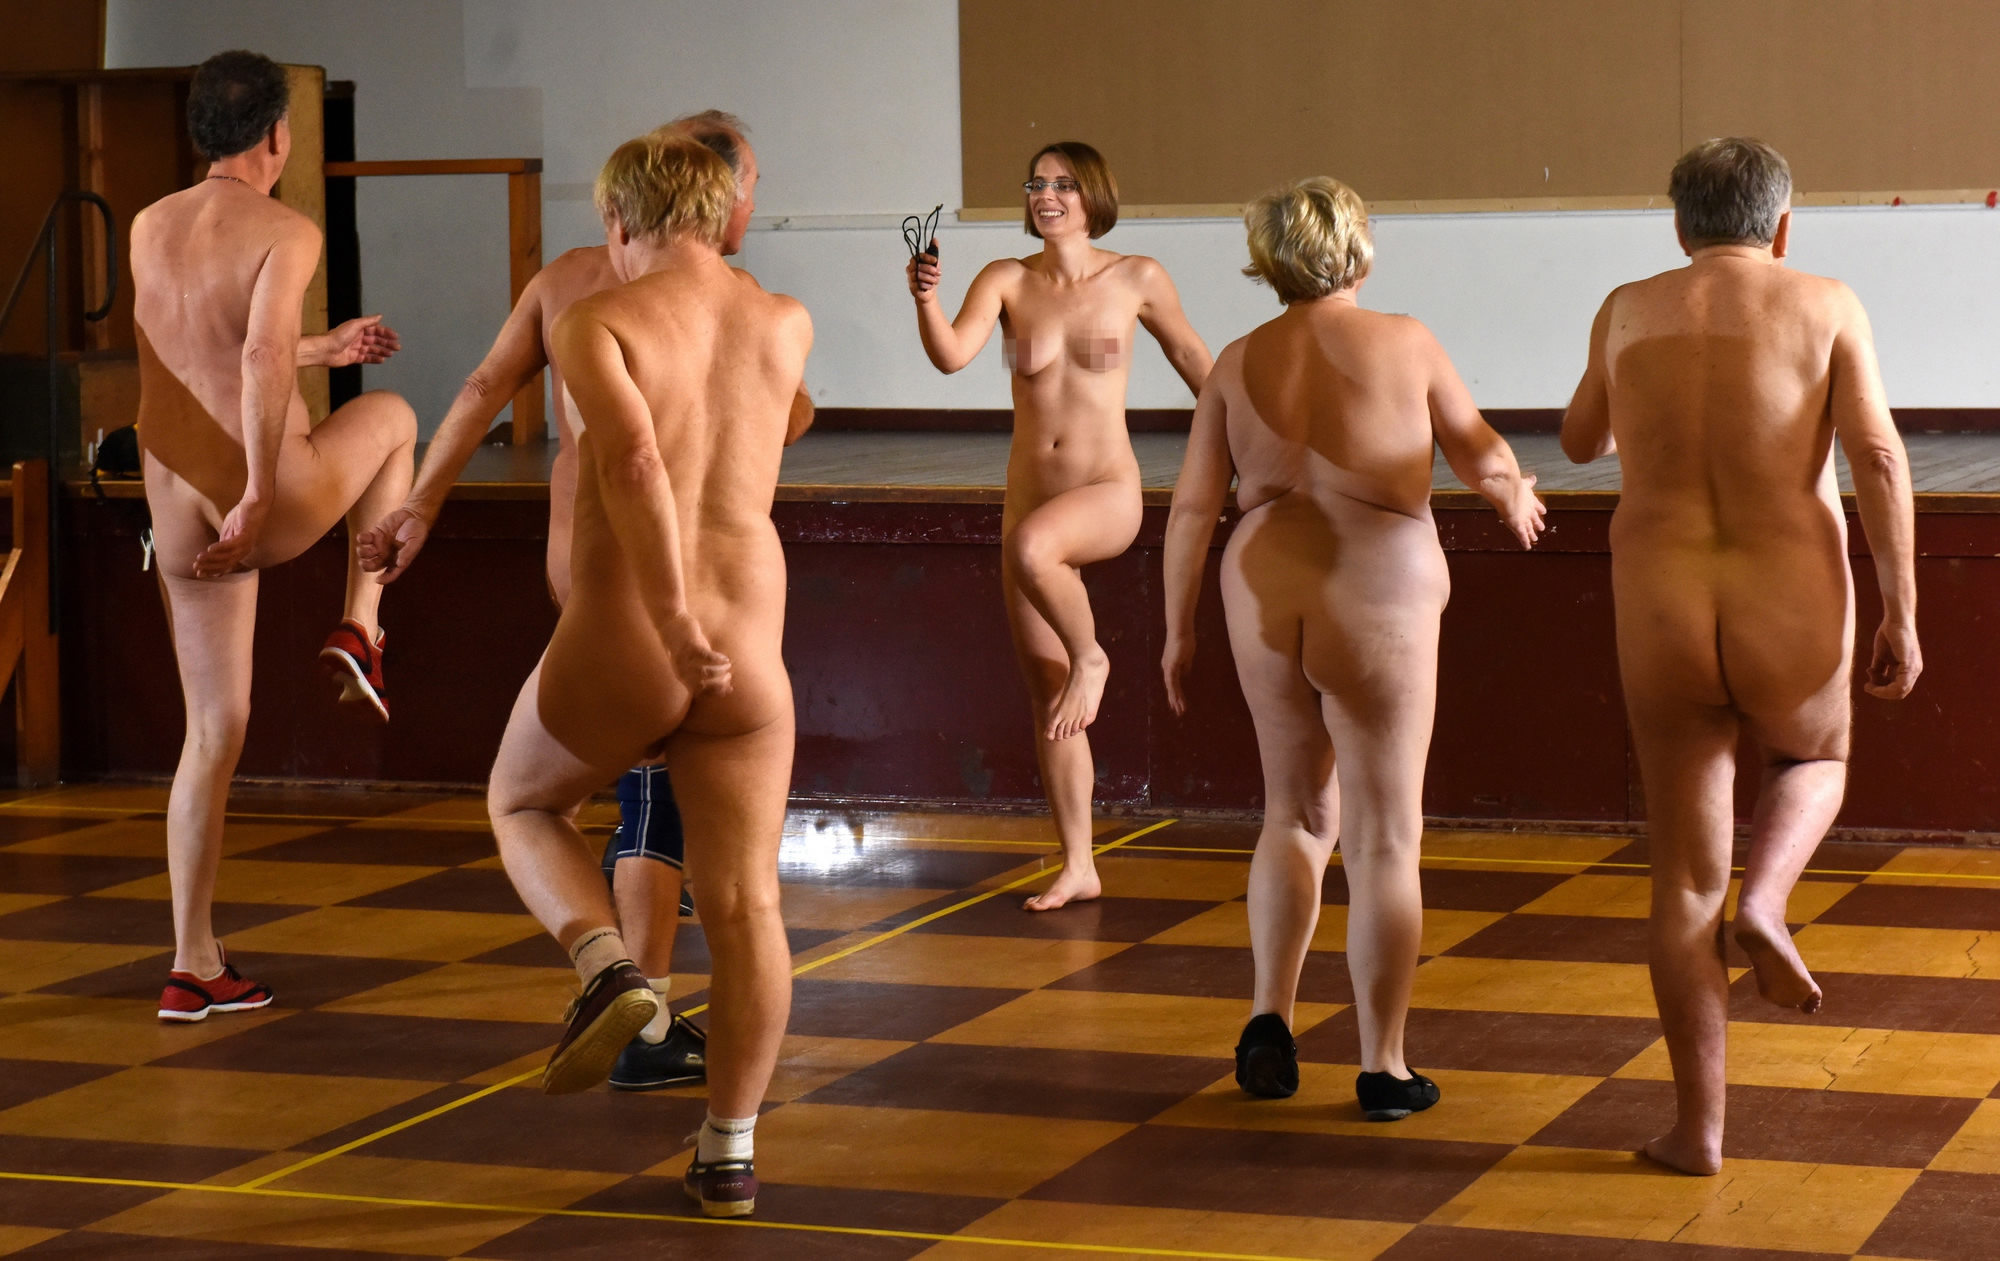 pics-of-naked-women-in-gymnasium-movis